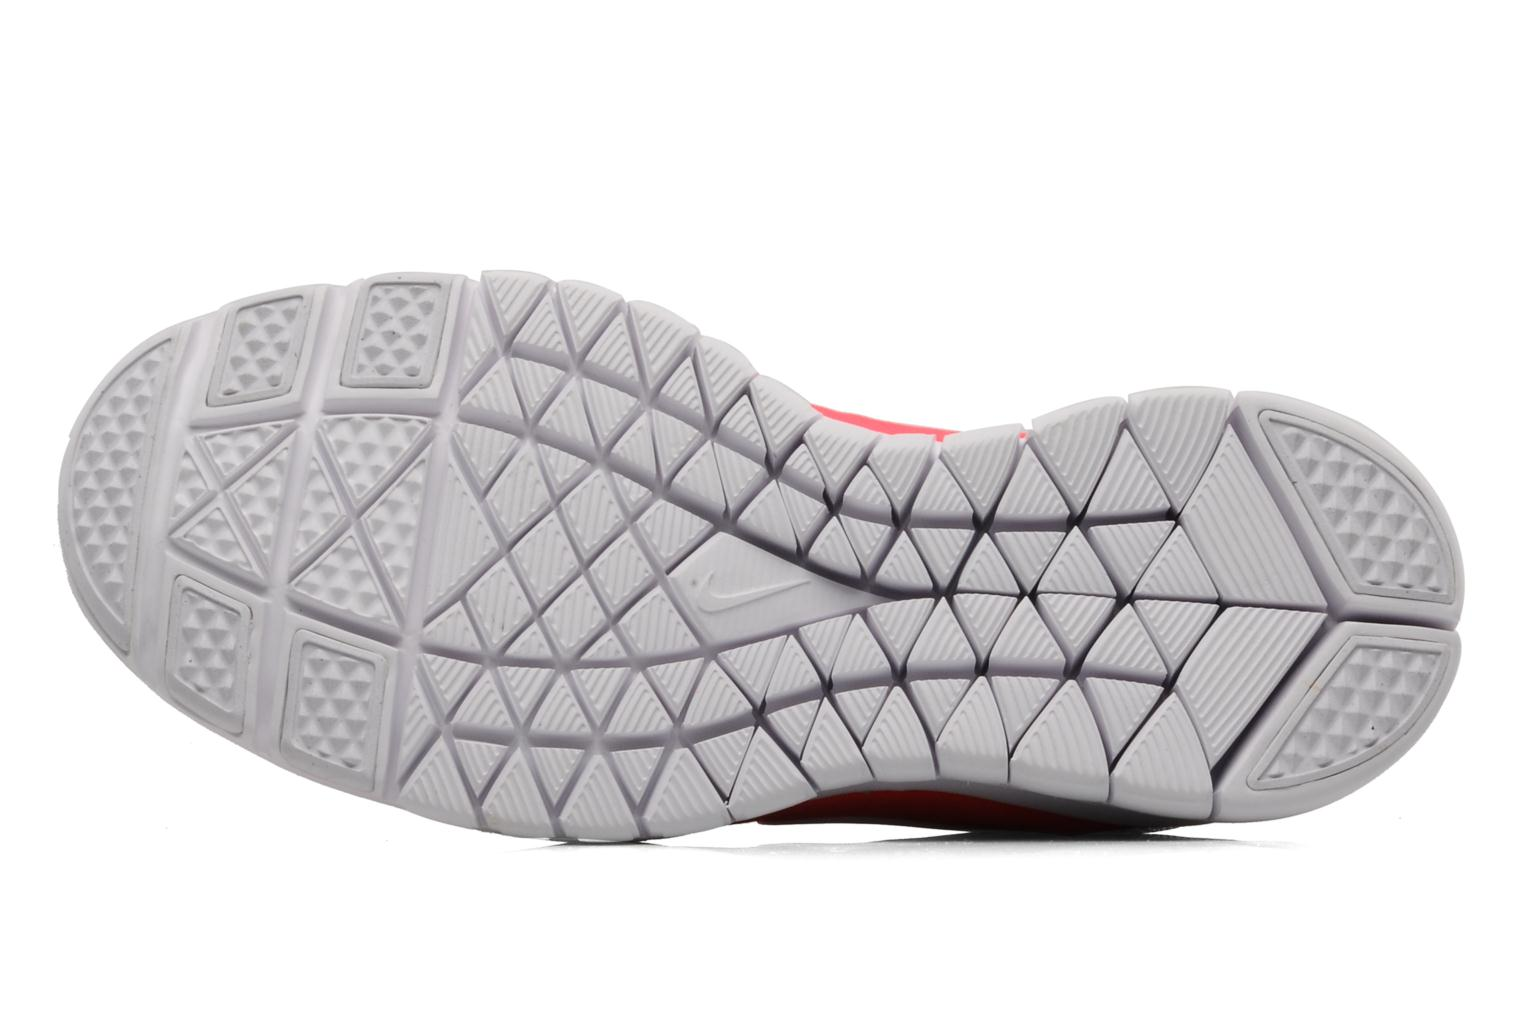 Wmns Nike Free Tr Fit Solar red White High Voltage